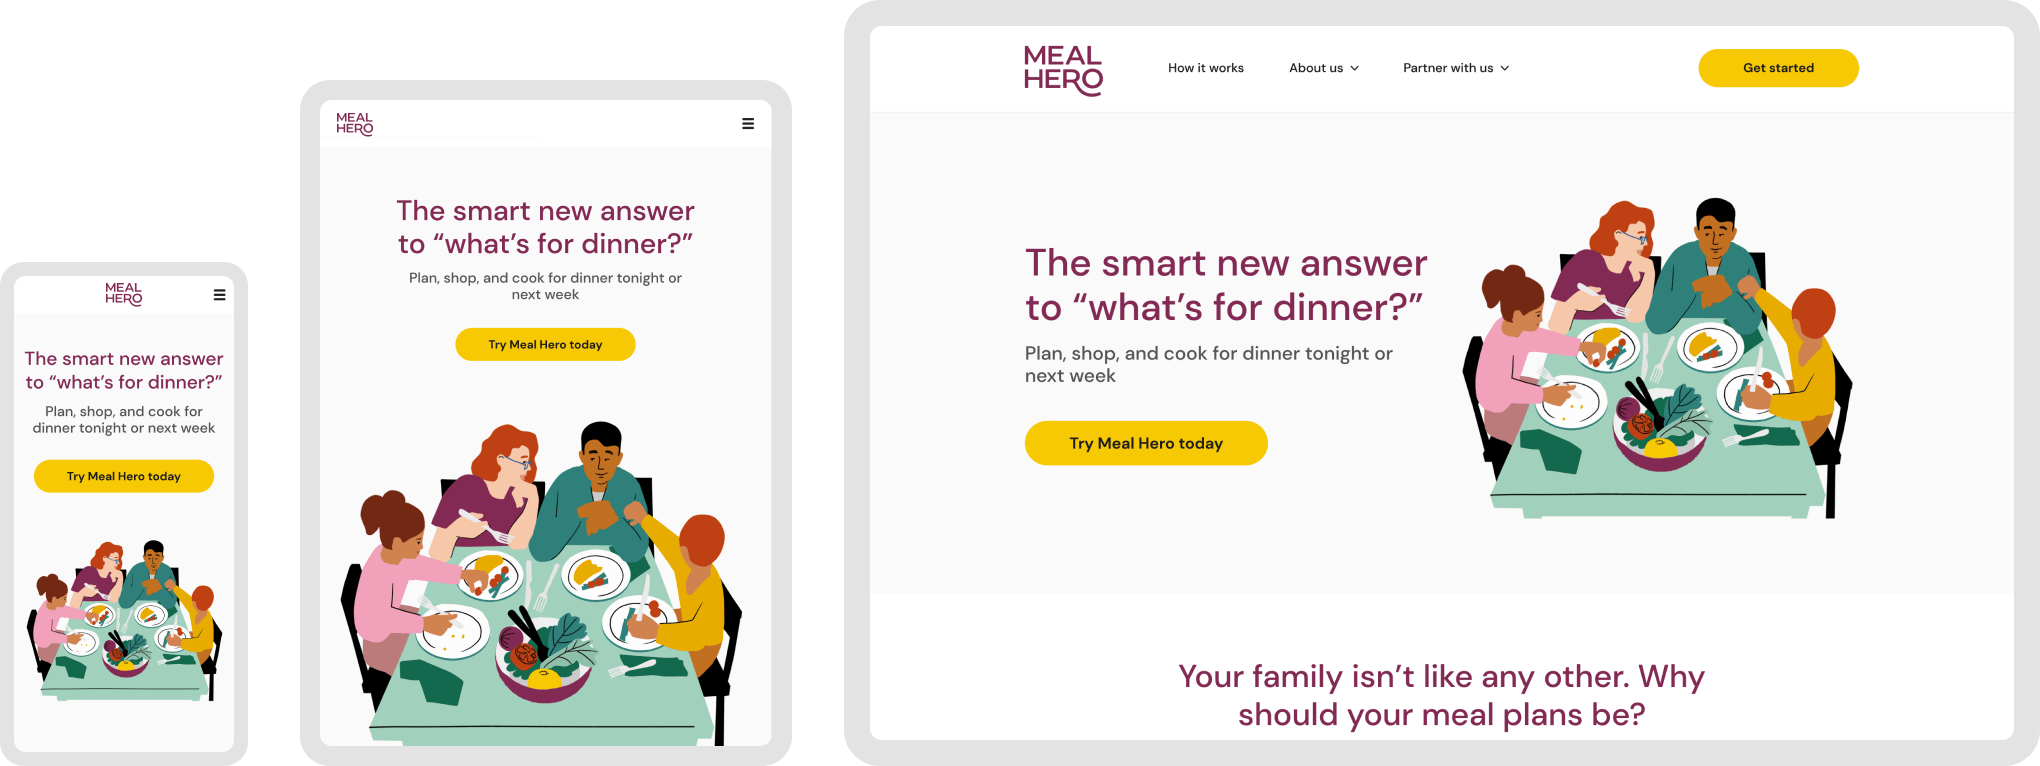 The responsive design for Meal Hero's homepage shown across mobile, tablet, and desktop devices.